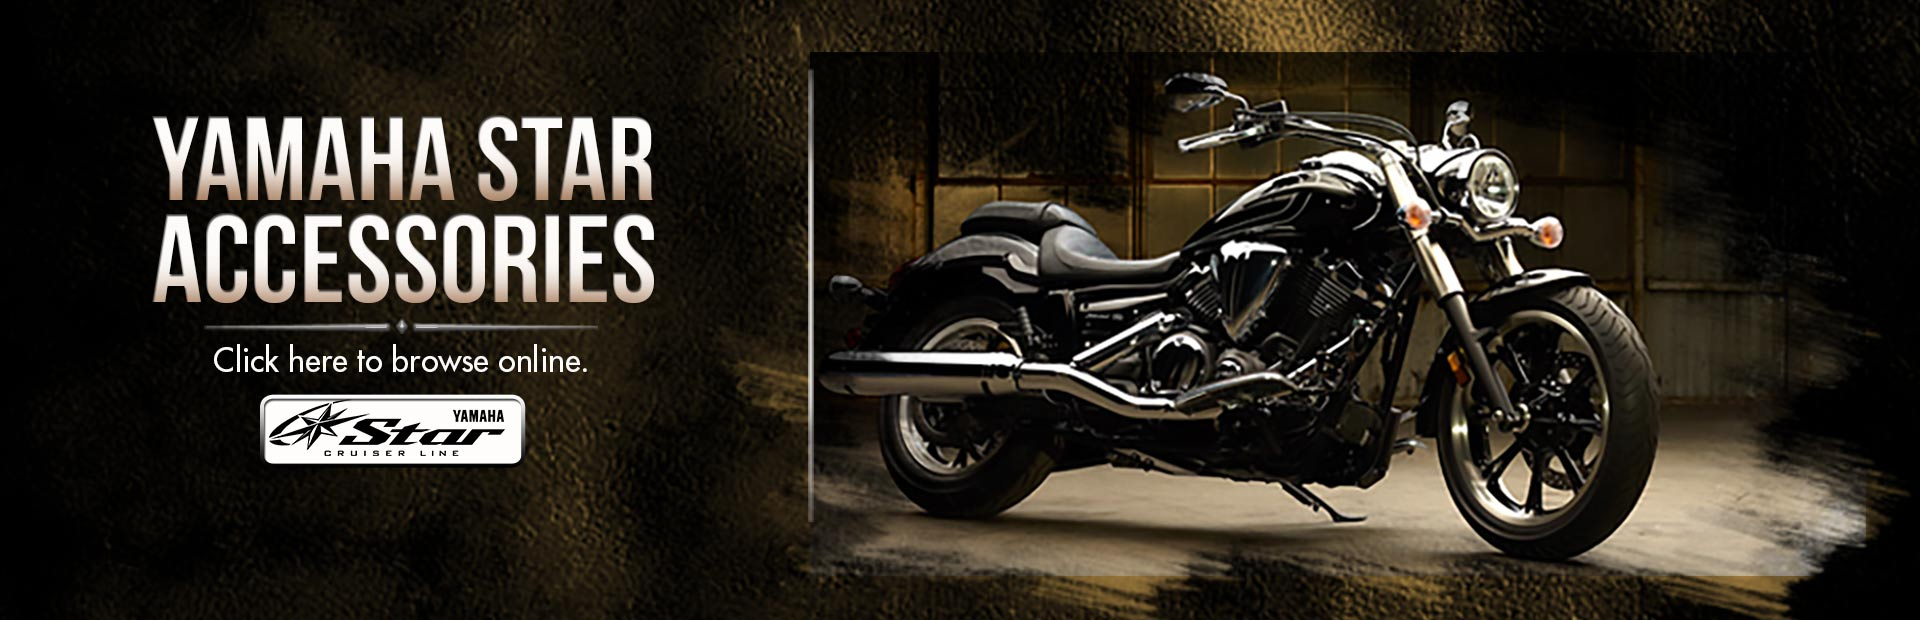 Click here to browse Yamaha Star Motorcycles accessories online.